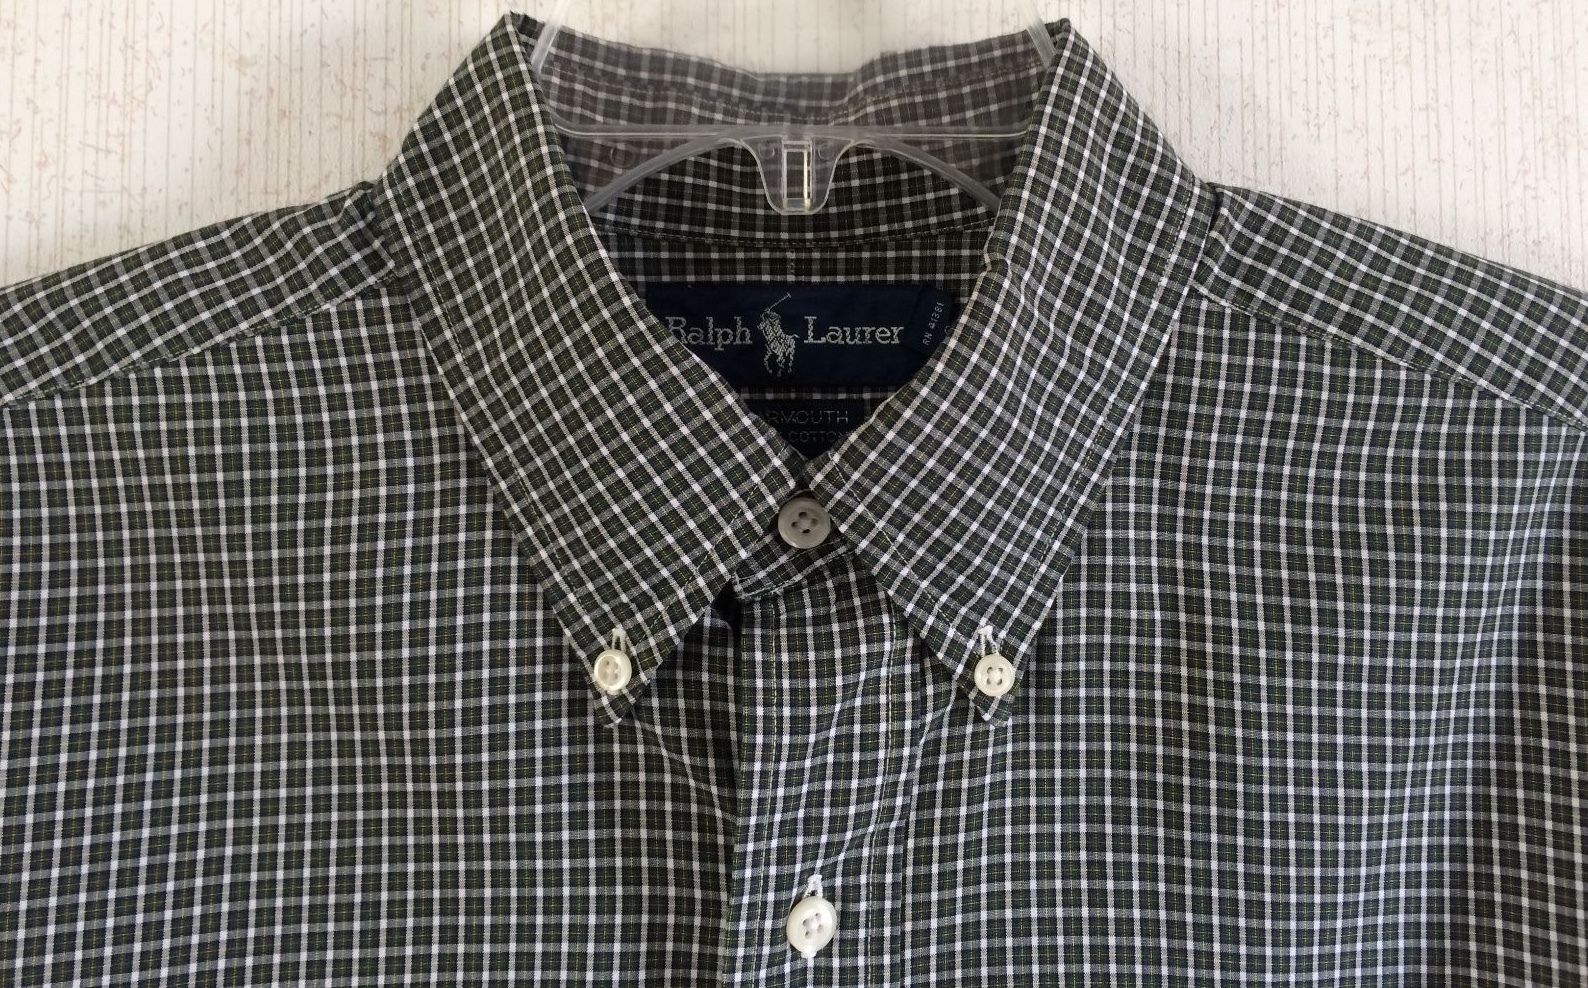 Ralph Lauren Polo Yarmouth Dress Shirt Cimarrons Closet Boutique